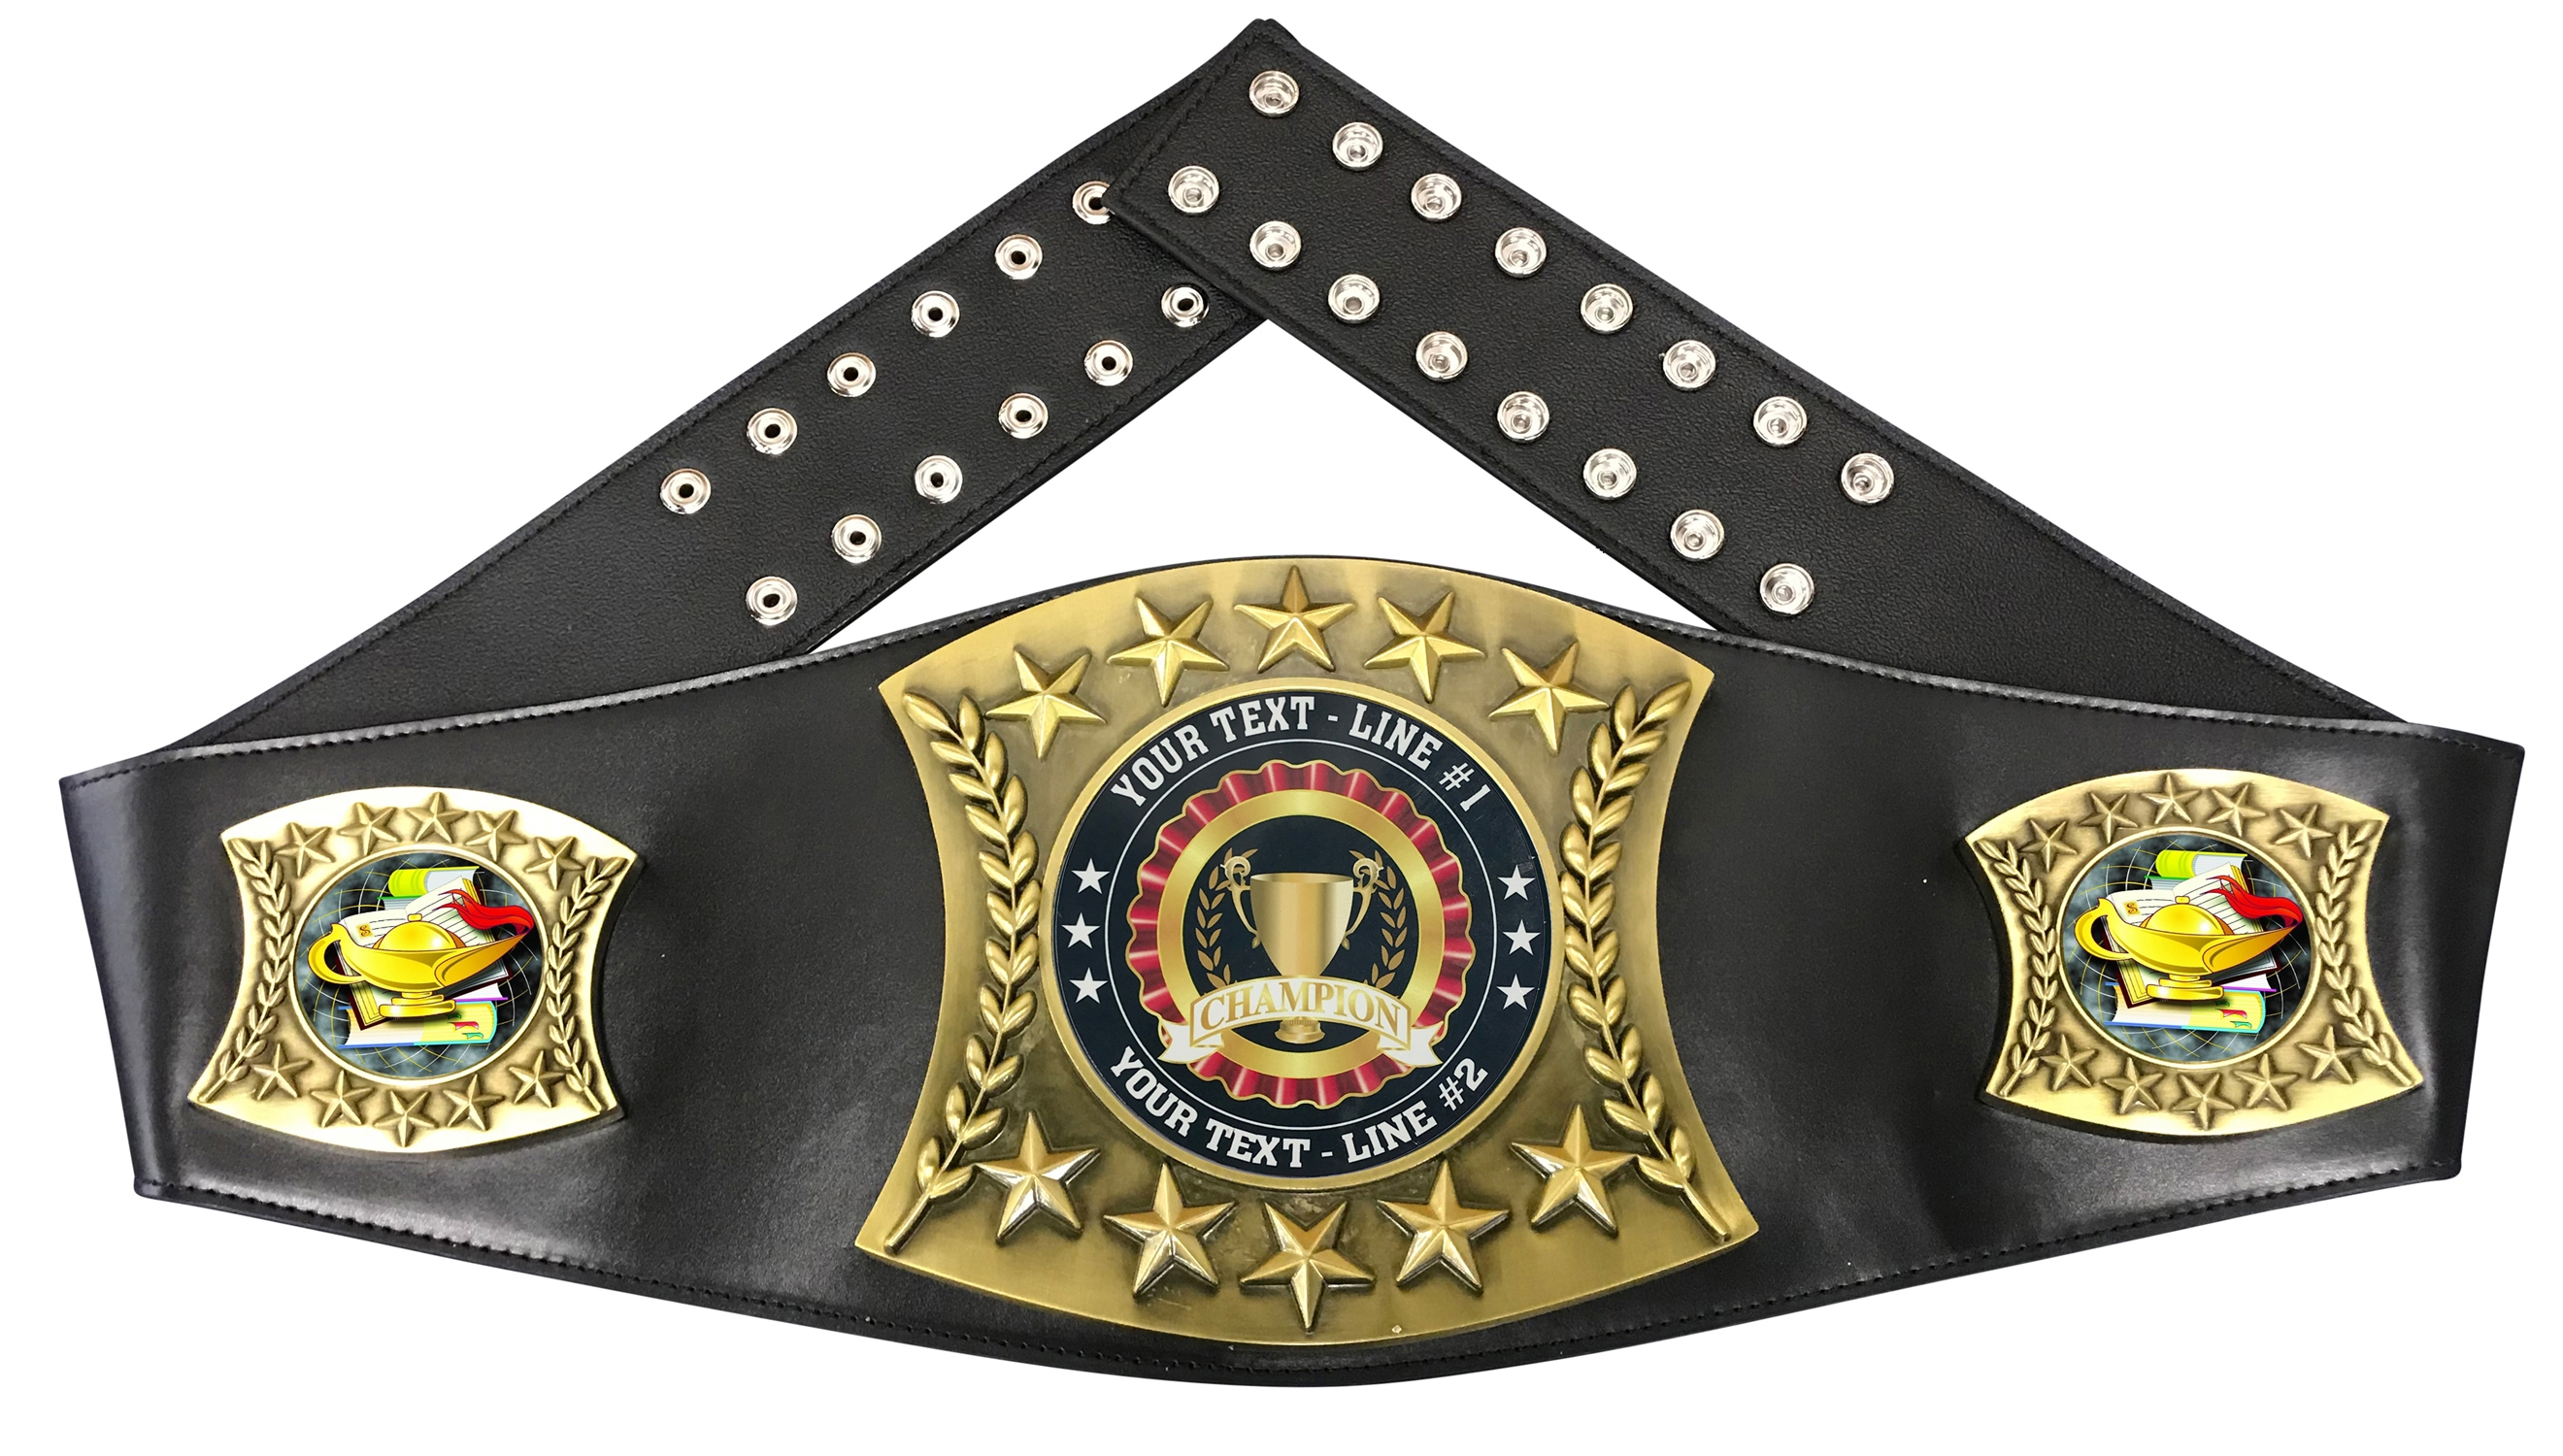 Book & Lamp Personalized Championship Leather Belt